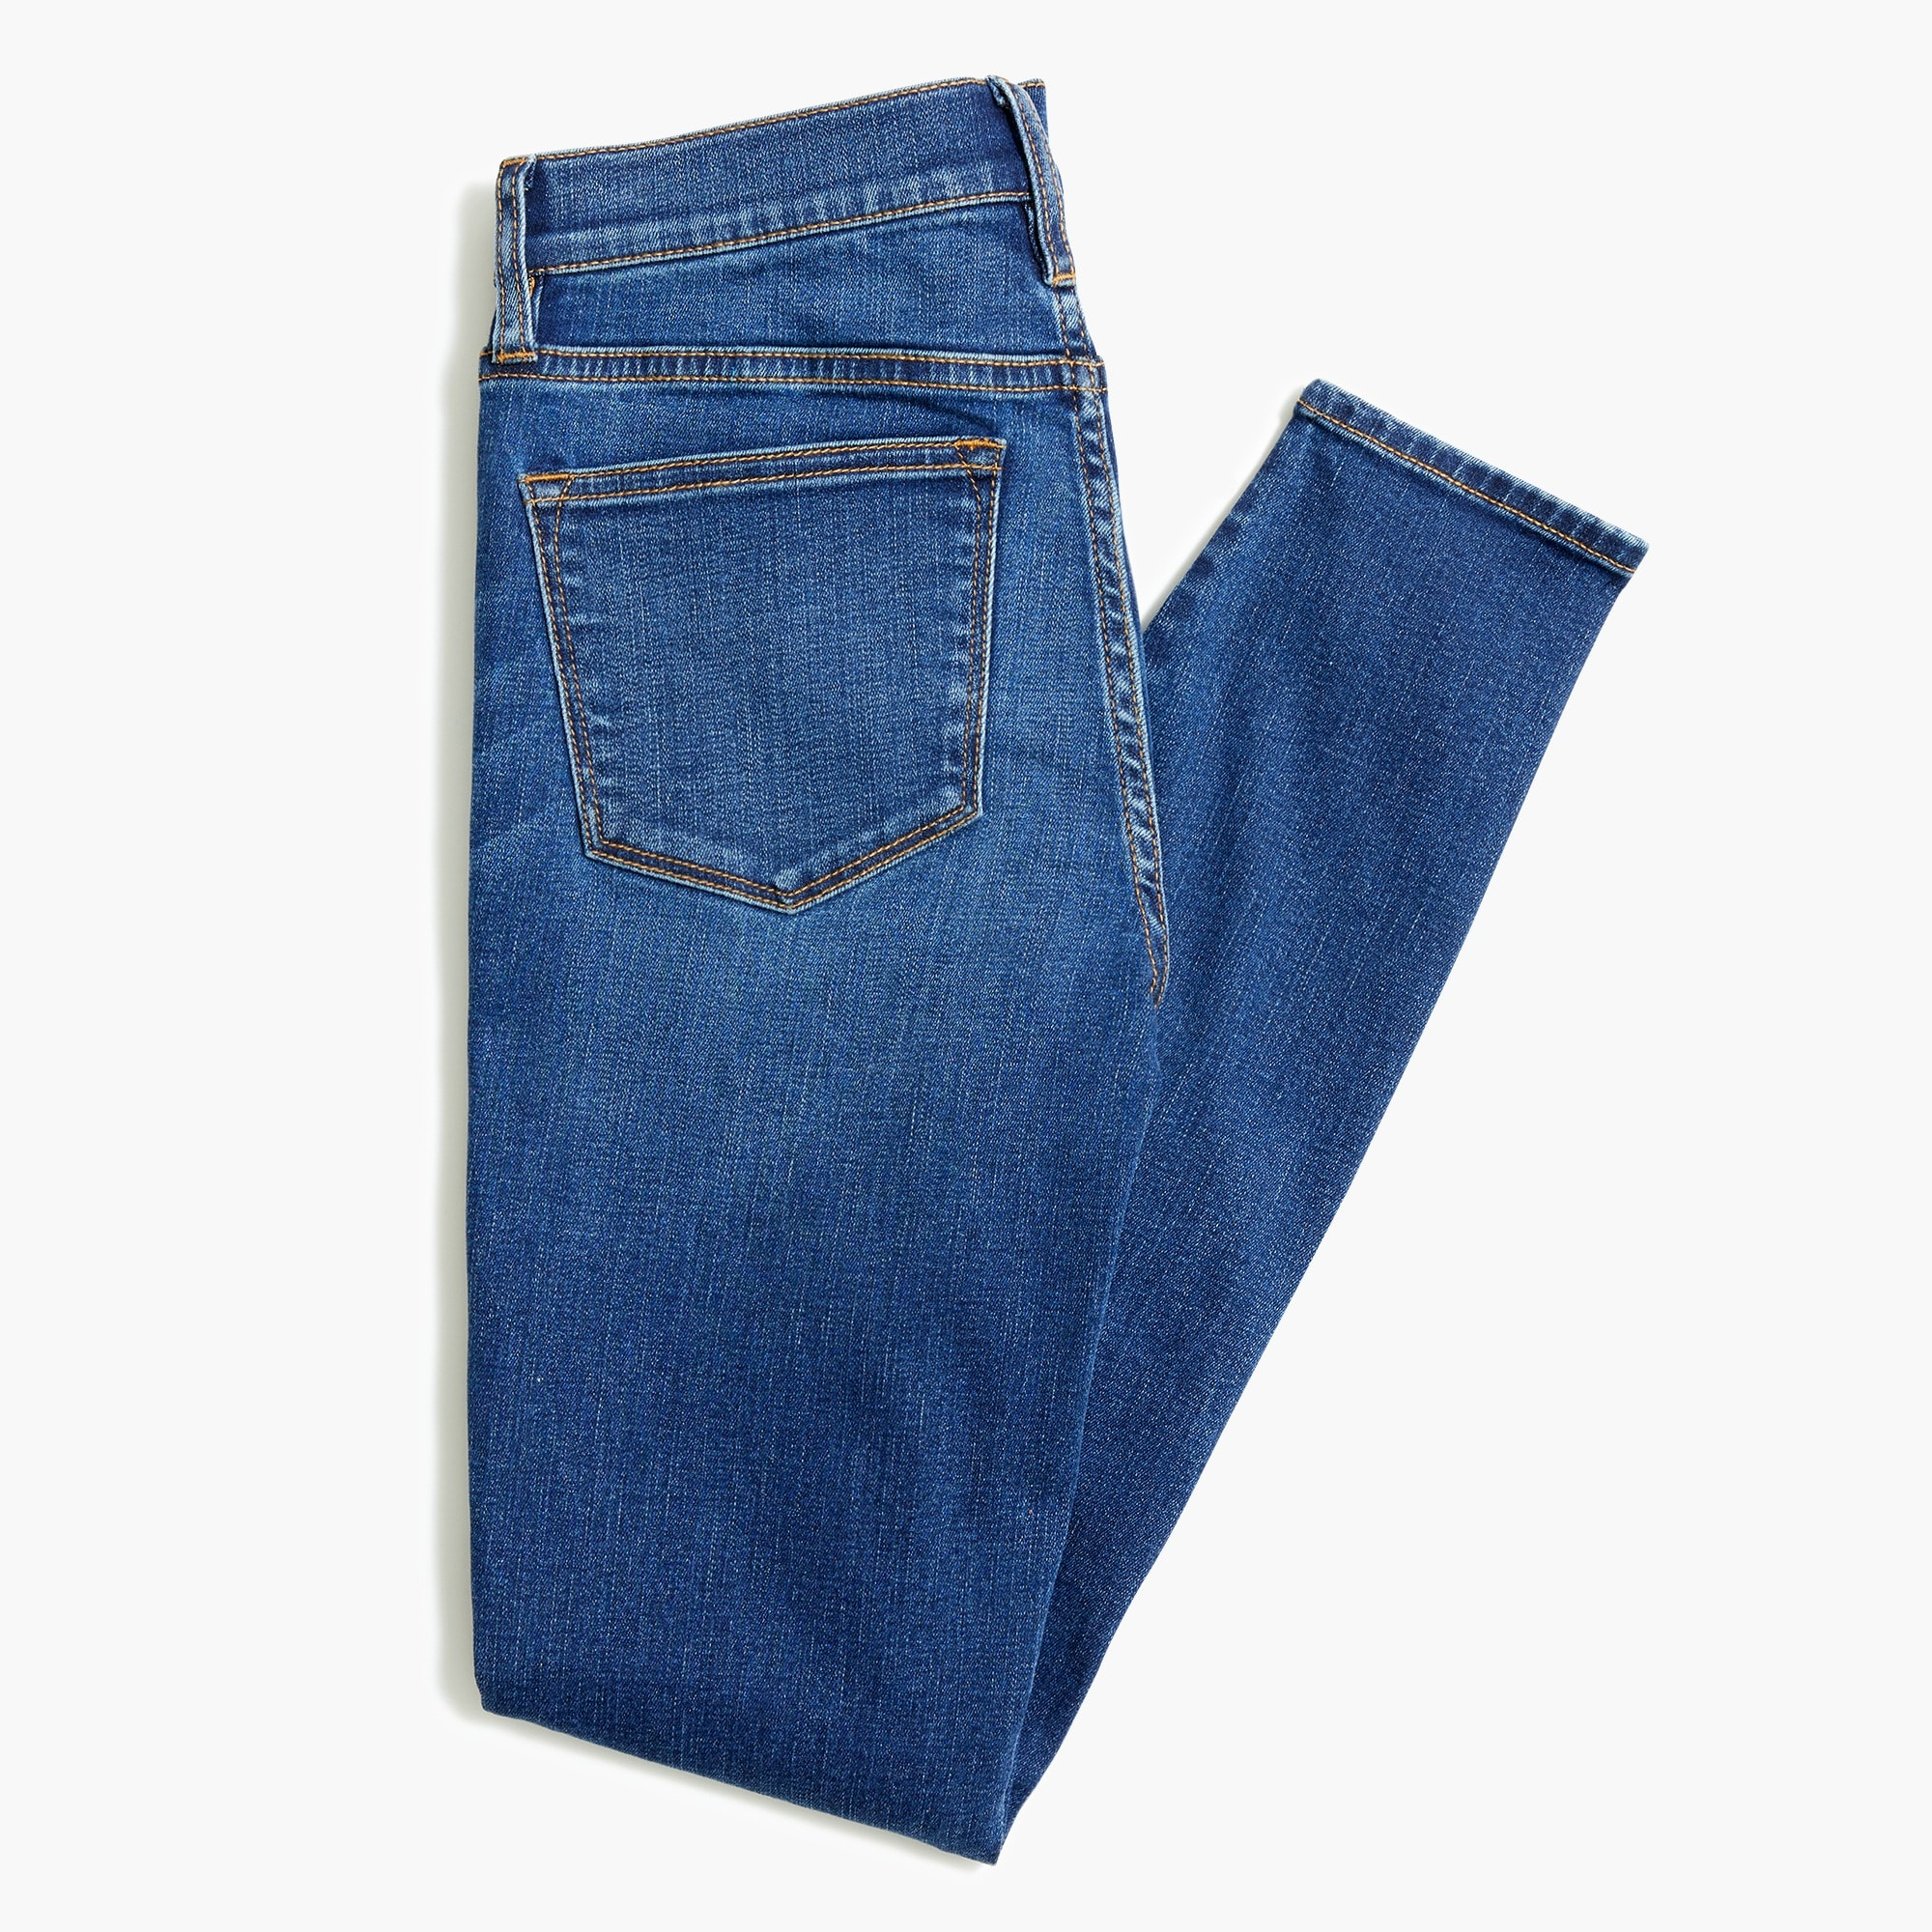 "8"" midrise skinny jean in Rockaway wash with 26"" inseam"